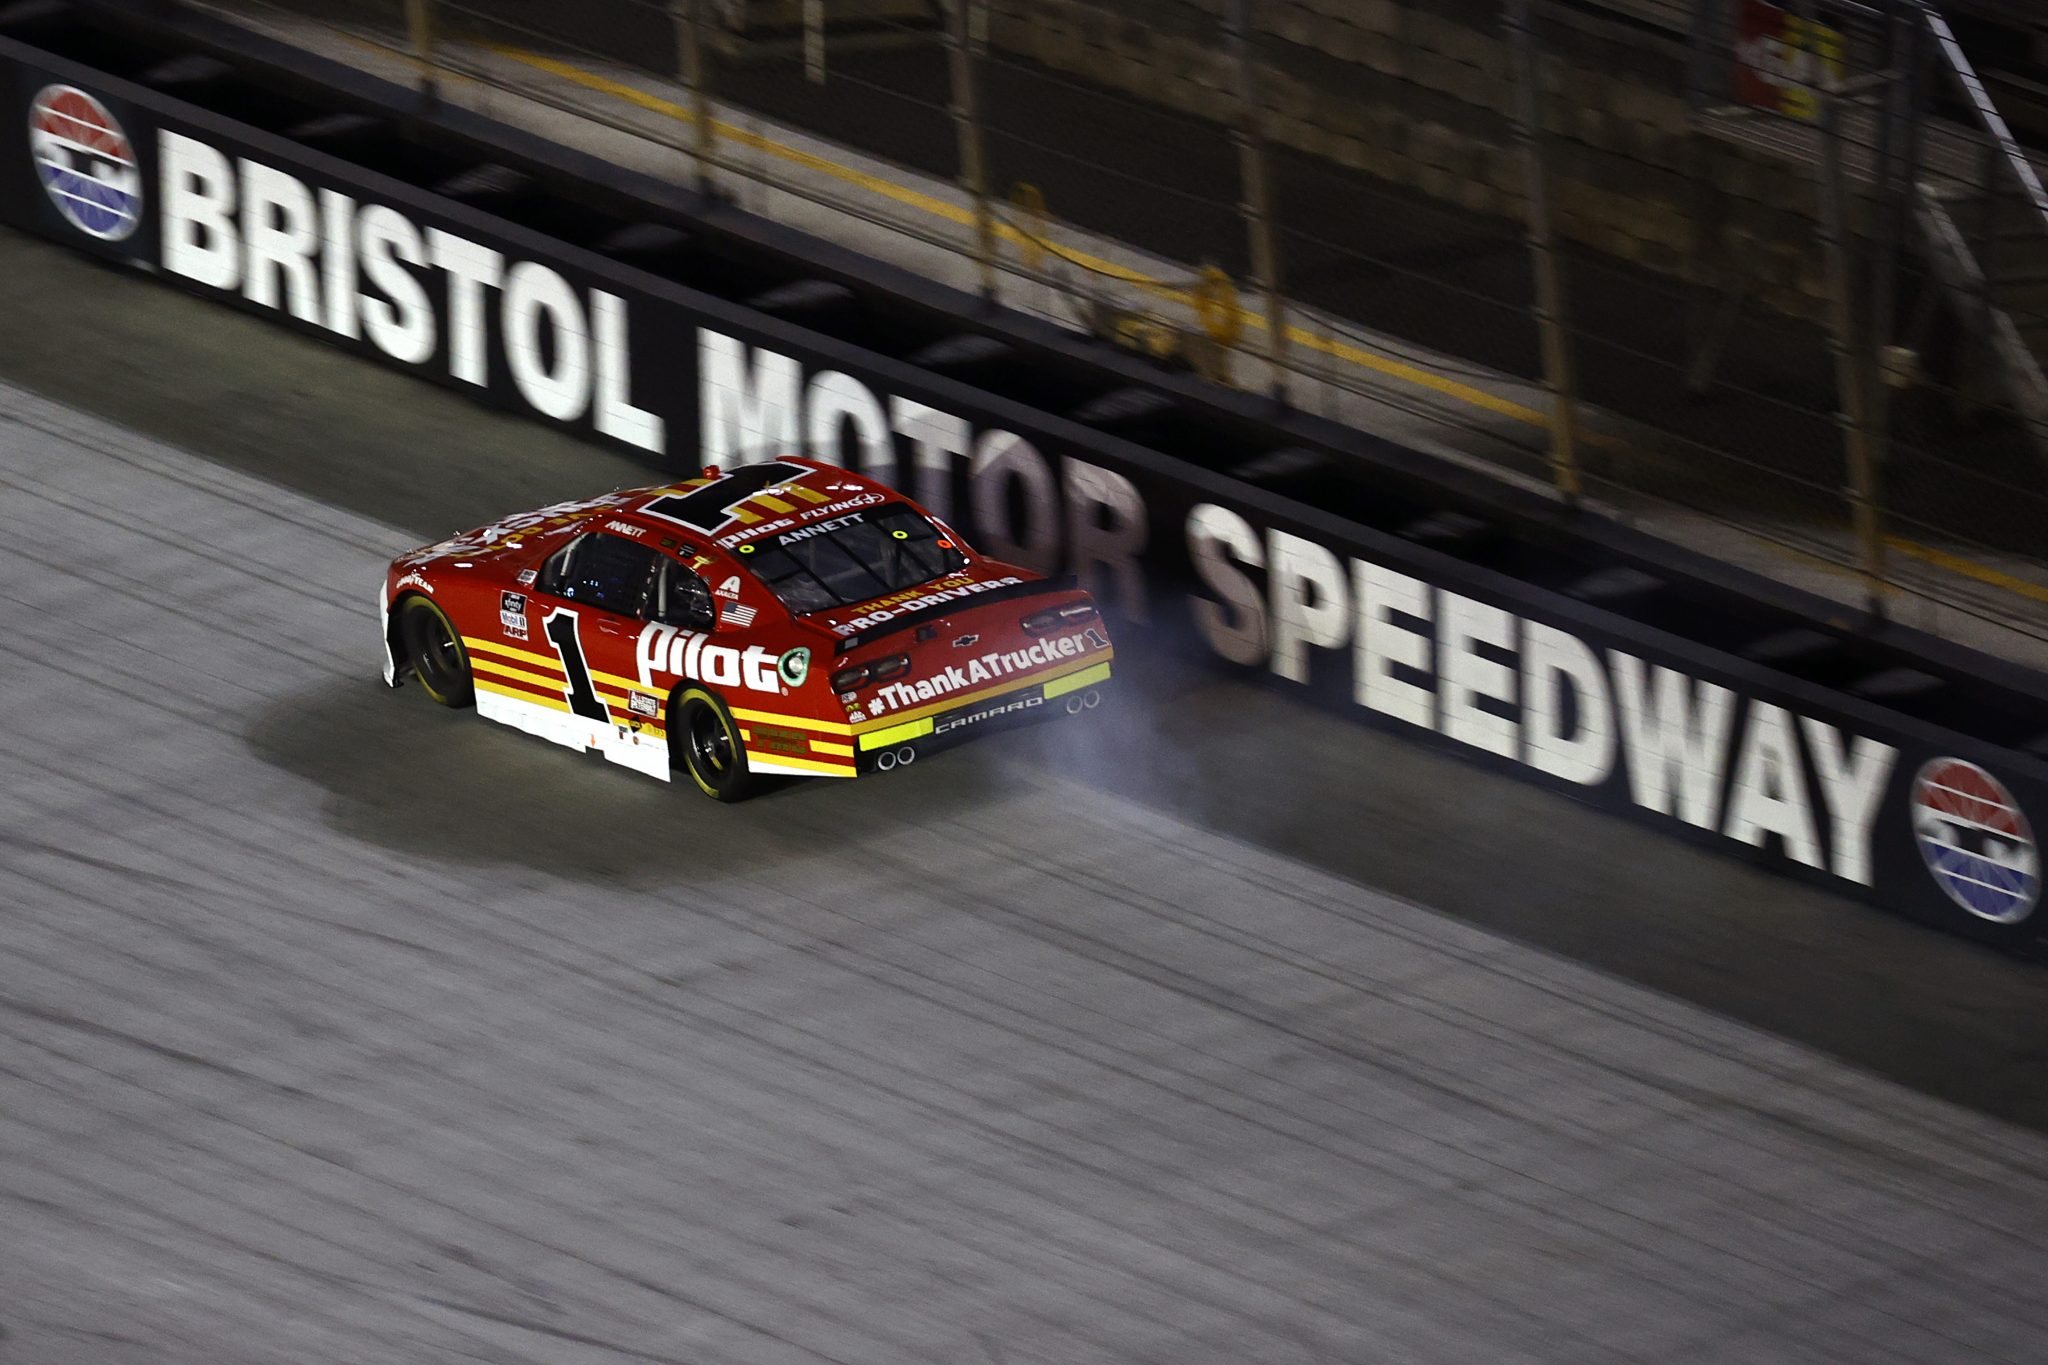 BRISTOL, TENNESSEE - SEPTEMBER 17: Josh Berry, driver of the #1 PFJ Thank A Trucker Chevrolet, drives during the NASCAR Xfinity Series Food City 300 at Bristol Motor Speedway on September 17, 2021 in Bristol, Tennessee. (Photo by Jared C. Tilton/Getty Images) | Getty Images